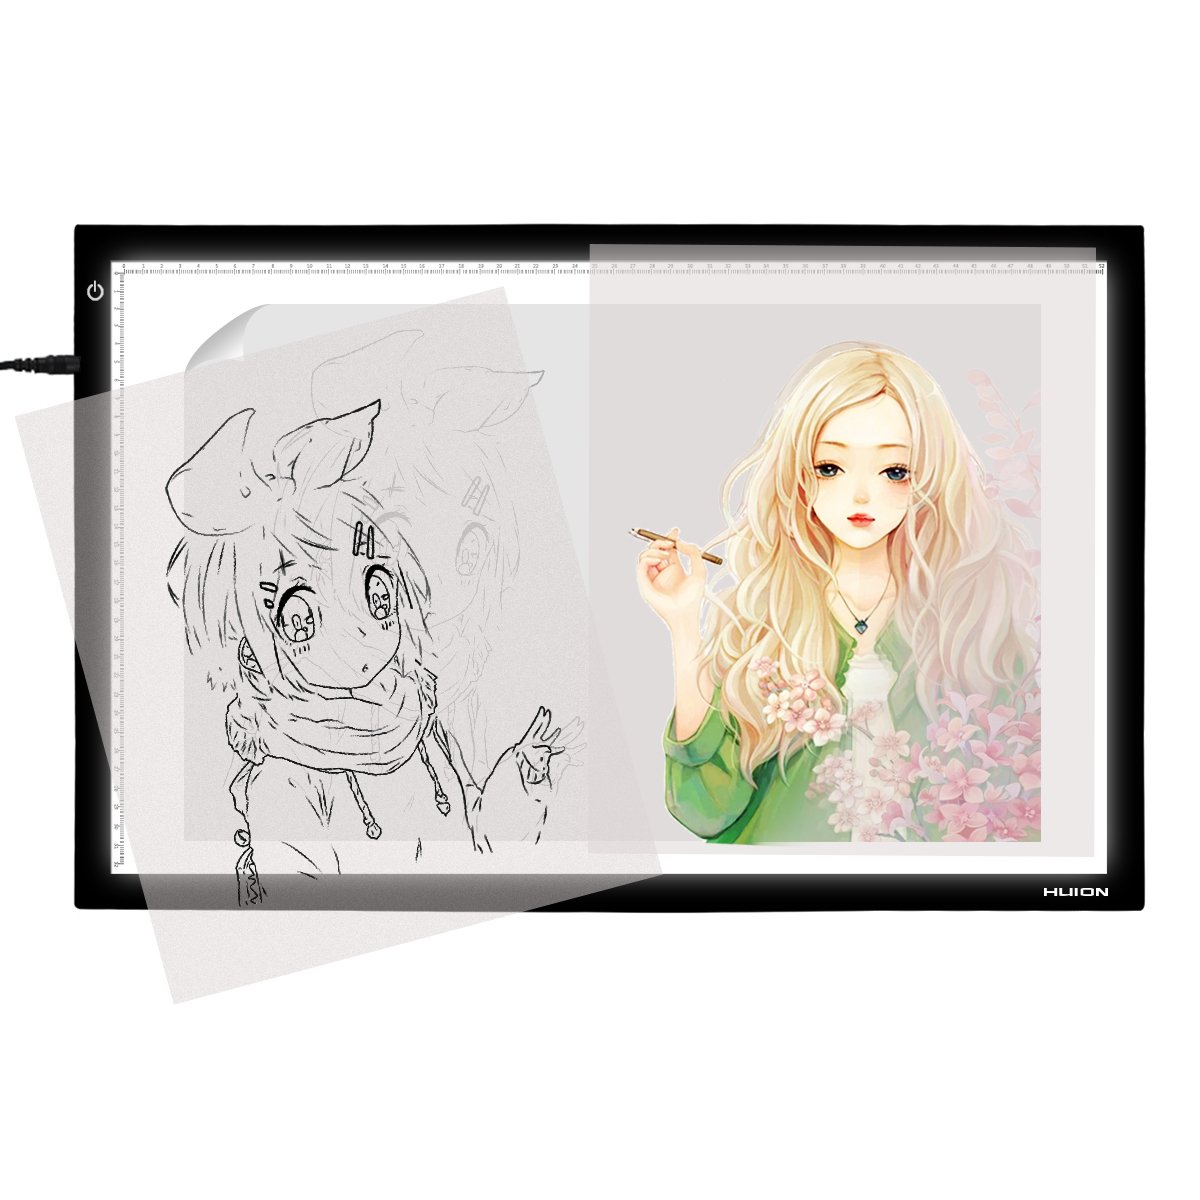 Huion 17.7 Inches LED Light Pad Light Box Shenzhen Huion Animation Technology Co. LTD Black-A4